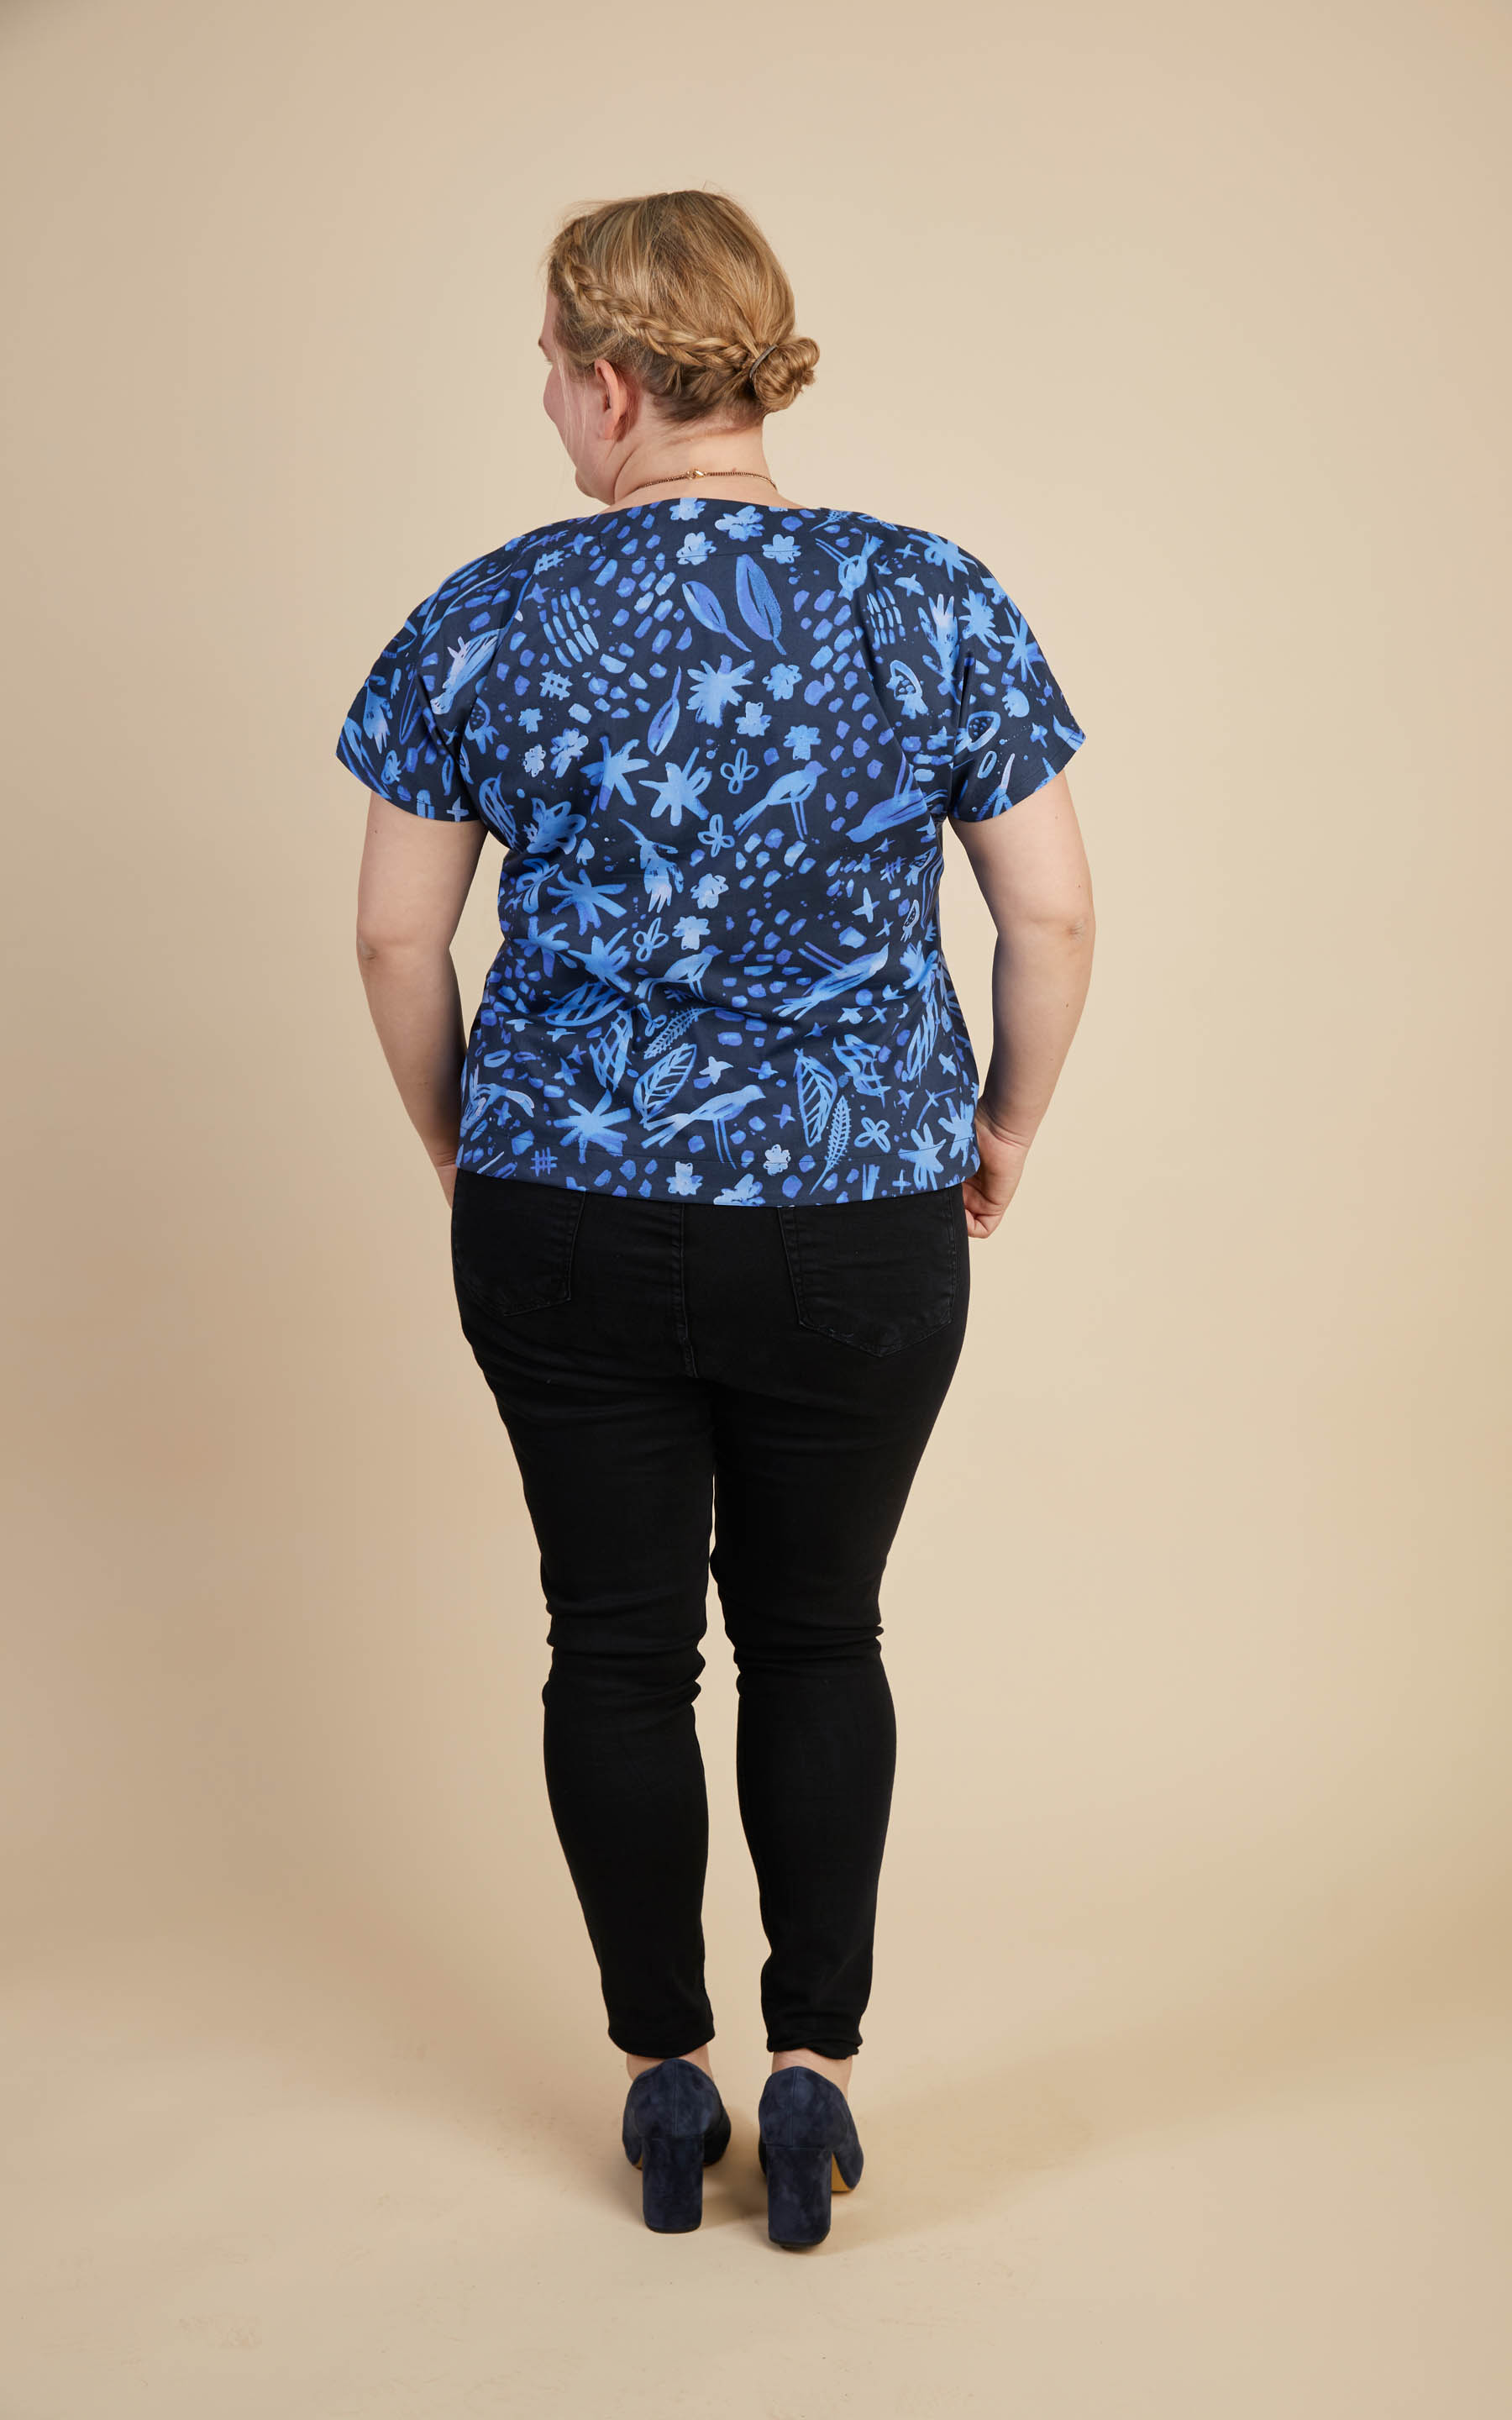 Cashmerette Cedar Dolman Top plus size activewear sewing pattern